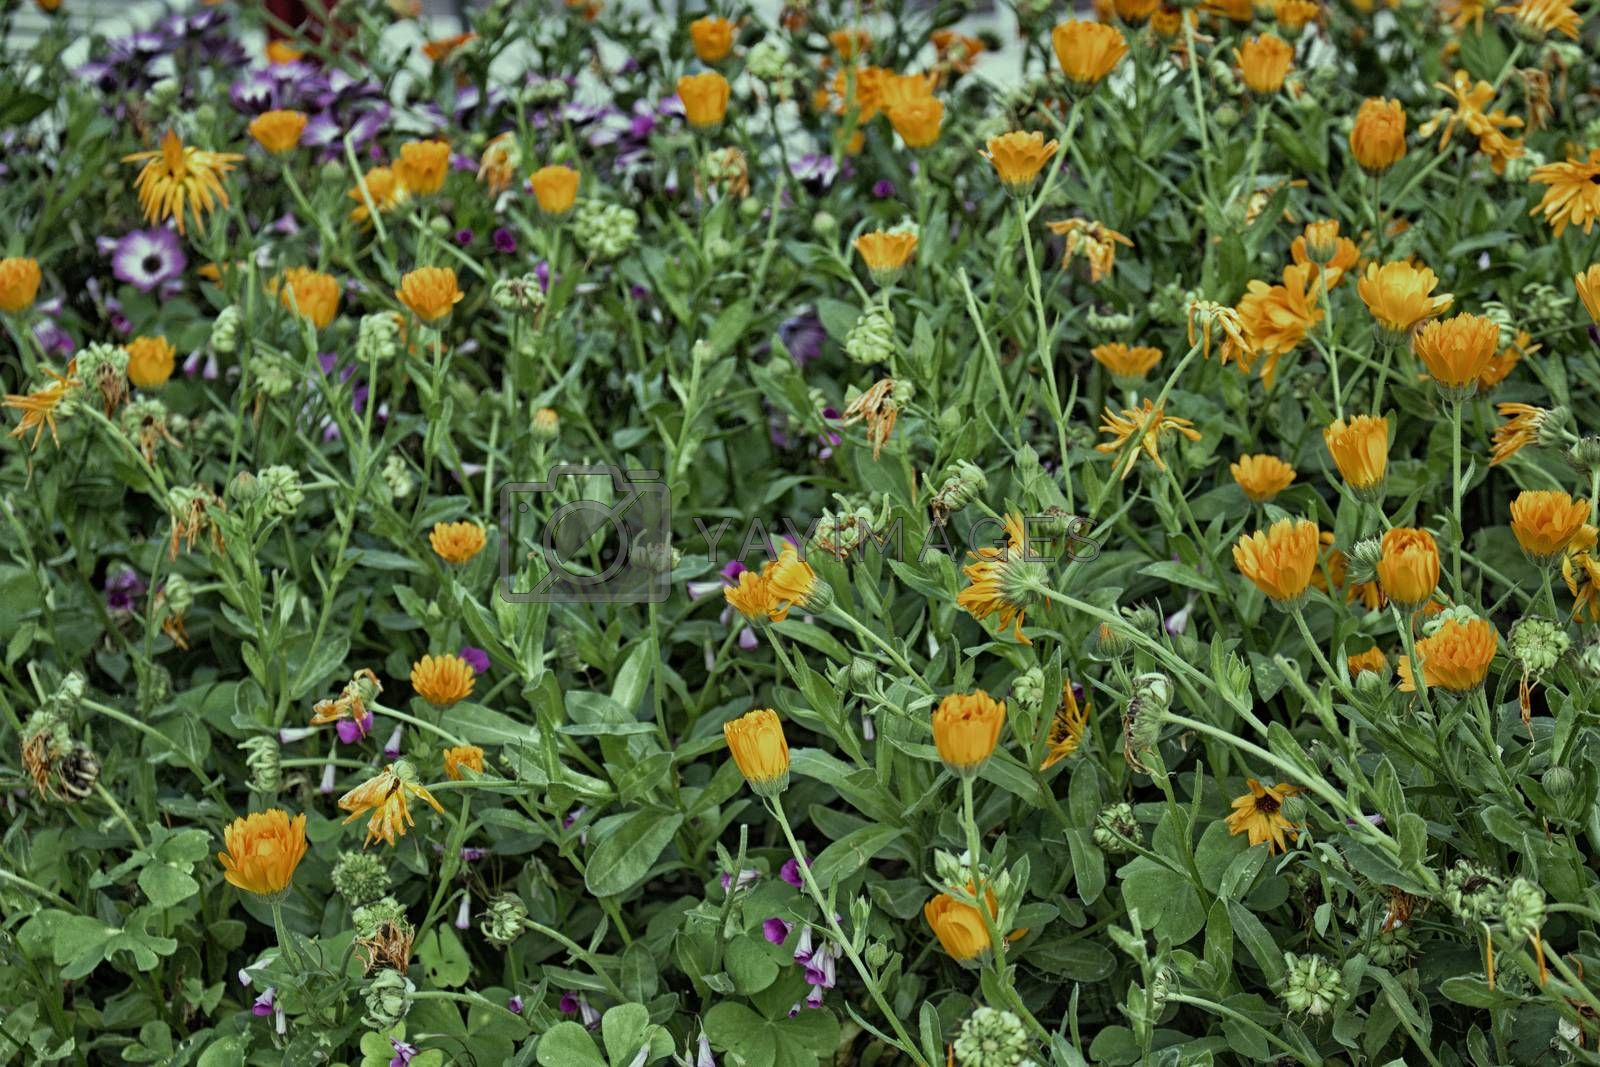 Green weeds and orange flowers background in Italian countryside